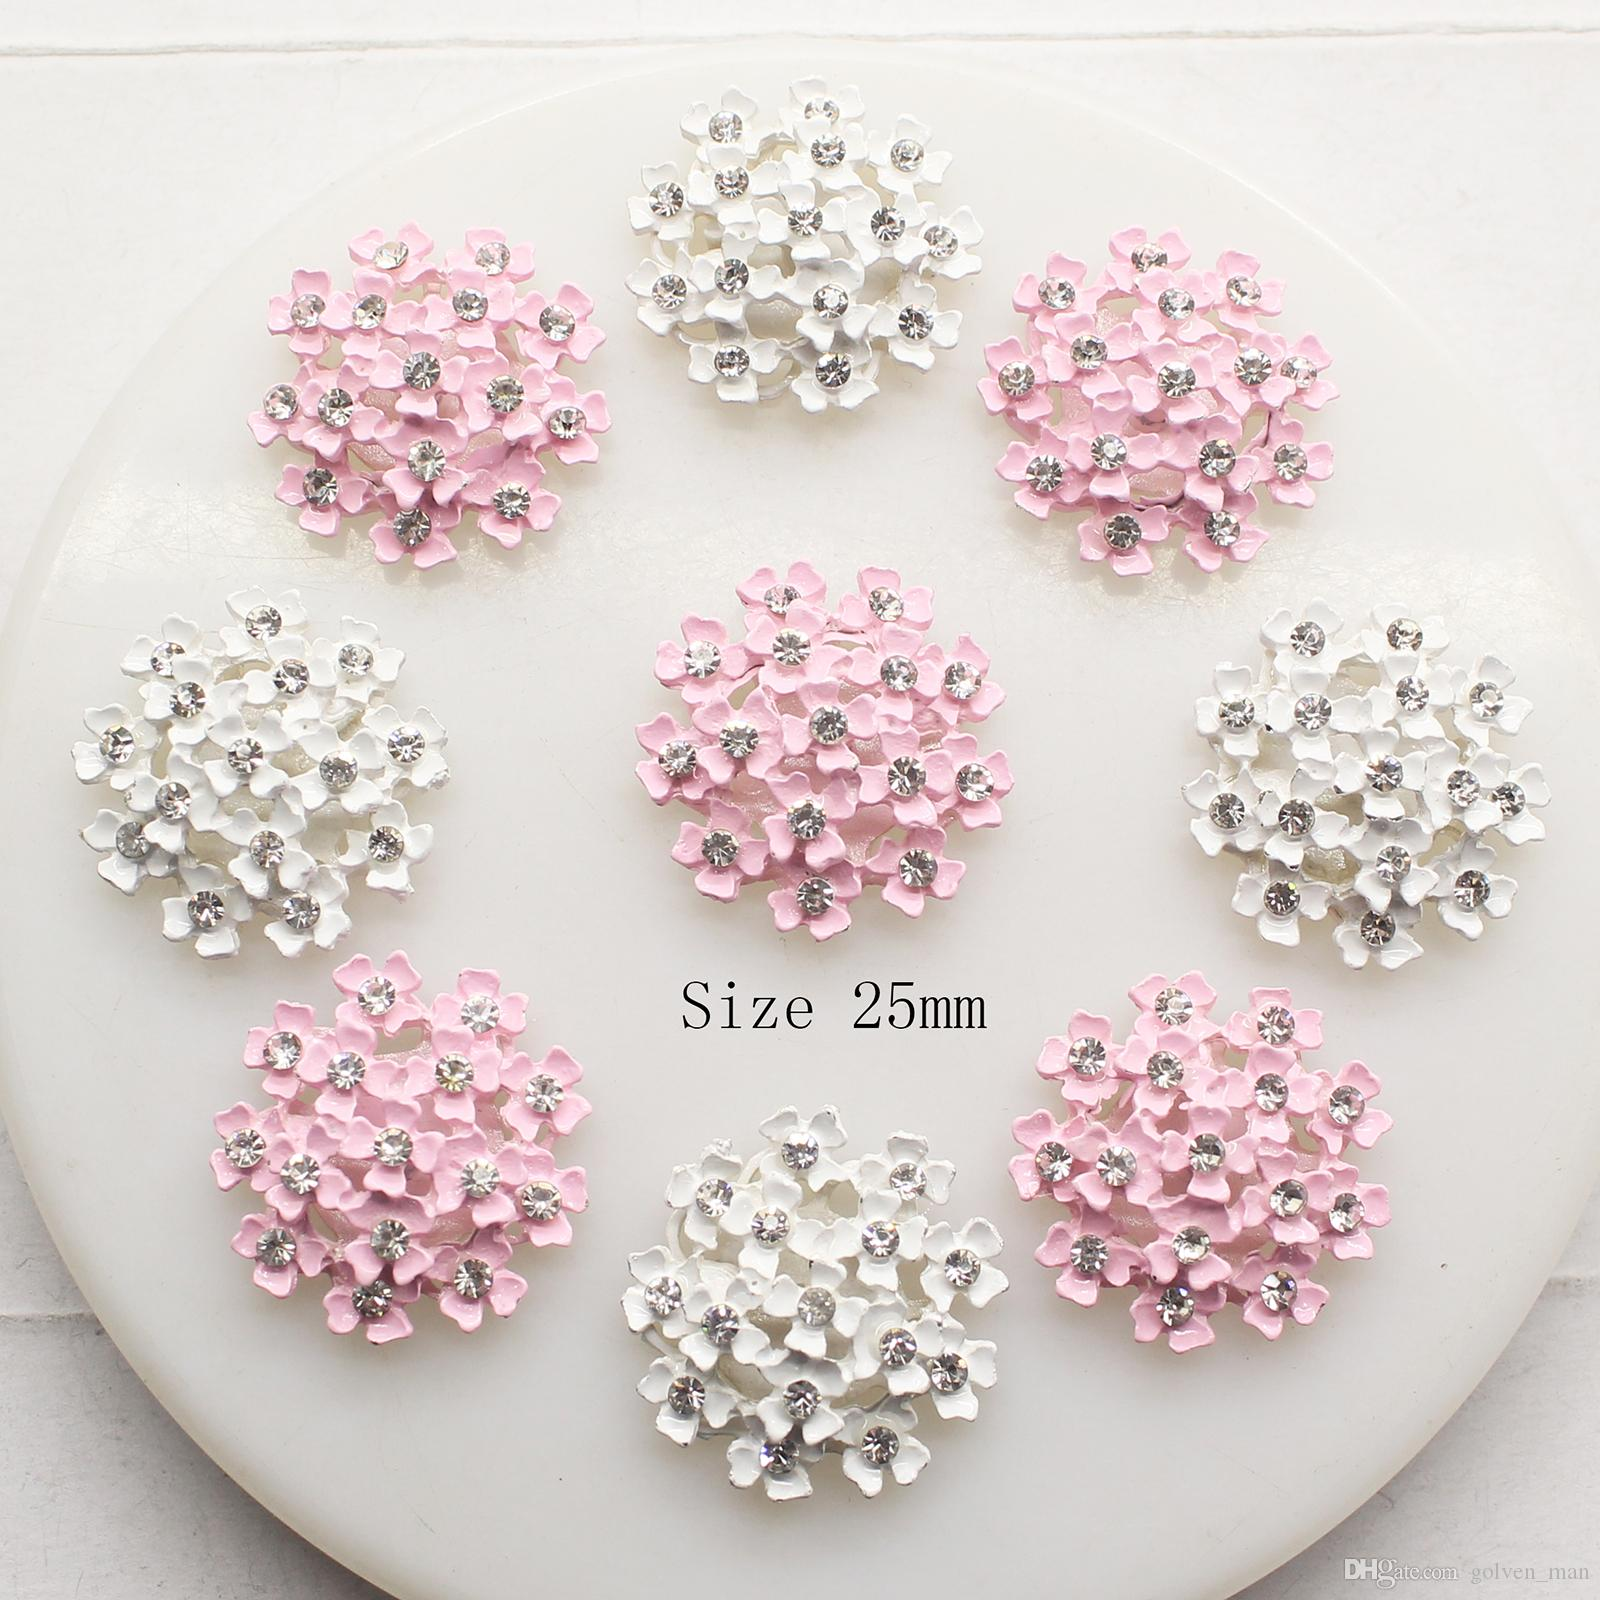 30pcs 25mm Alloy Metal Rhinestone Buttons for Clothing Craft for Scrapbooking Loose Beads for Wedding Decoration Hair Ribbon Accessories